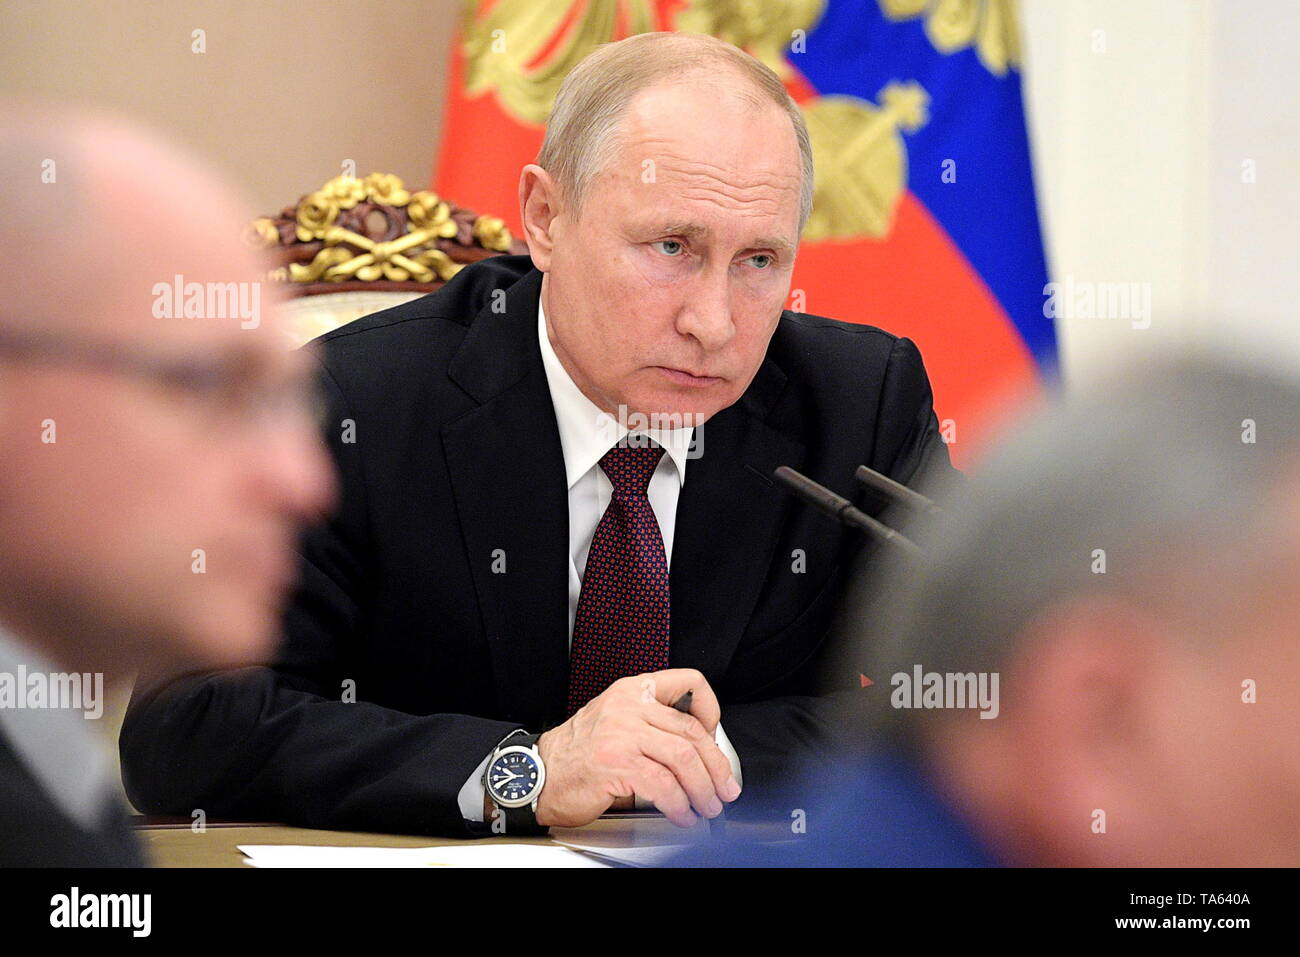 Moscow, Russia. 22nd May, 2019. MOSCOW, RUSSIA - MAY 22, 2019: Russia's President Vladimir Putin (C) during a meeting with members of the Russian Government at the Moscow Kremlin. Alexei Druzhinin/Russian Presidential Press and Information Office/TASS Credit: ITAR-TASS News Agency/Alamy Live News - Stock Image